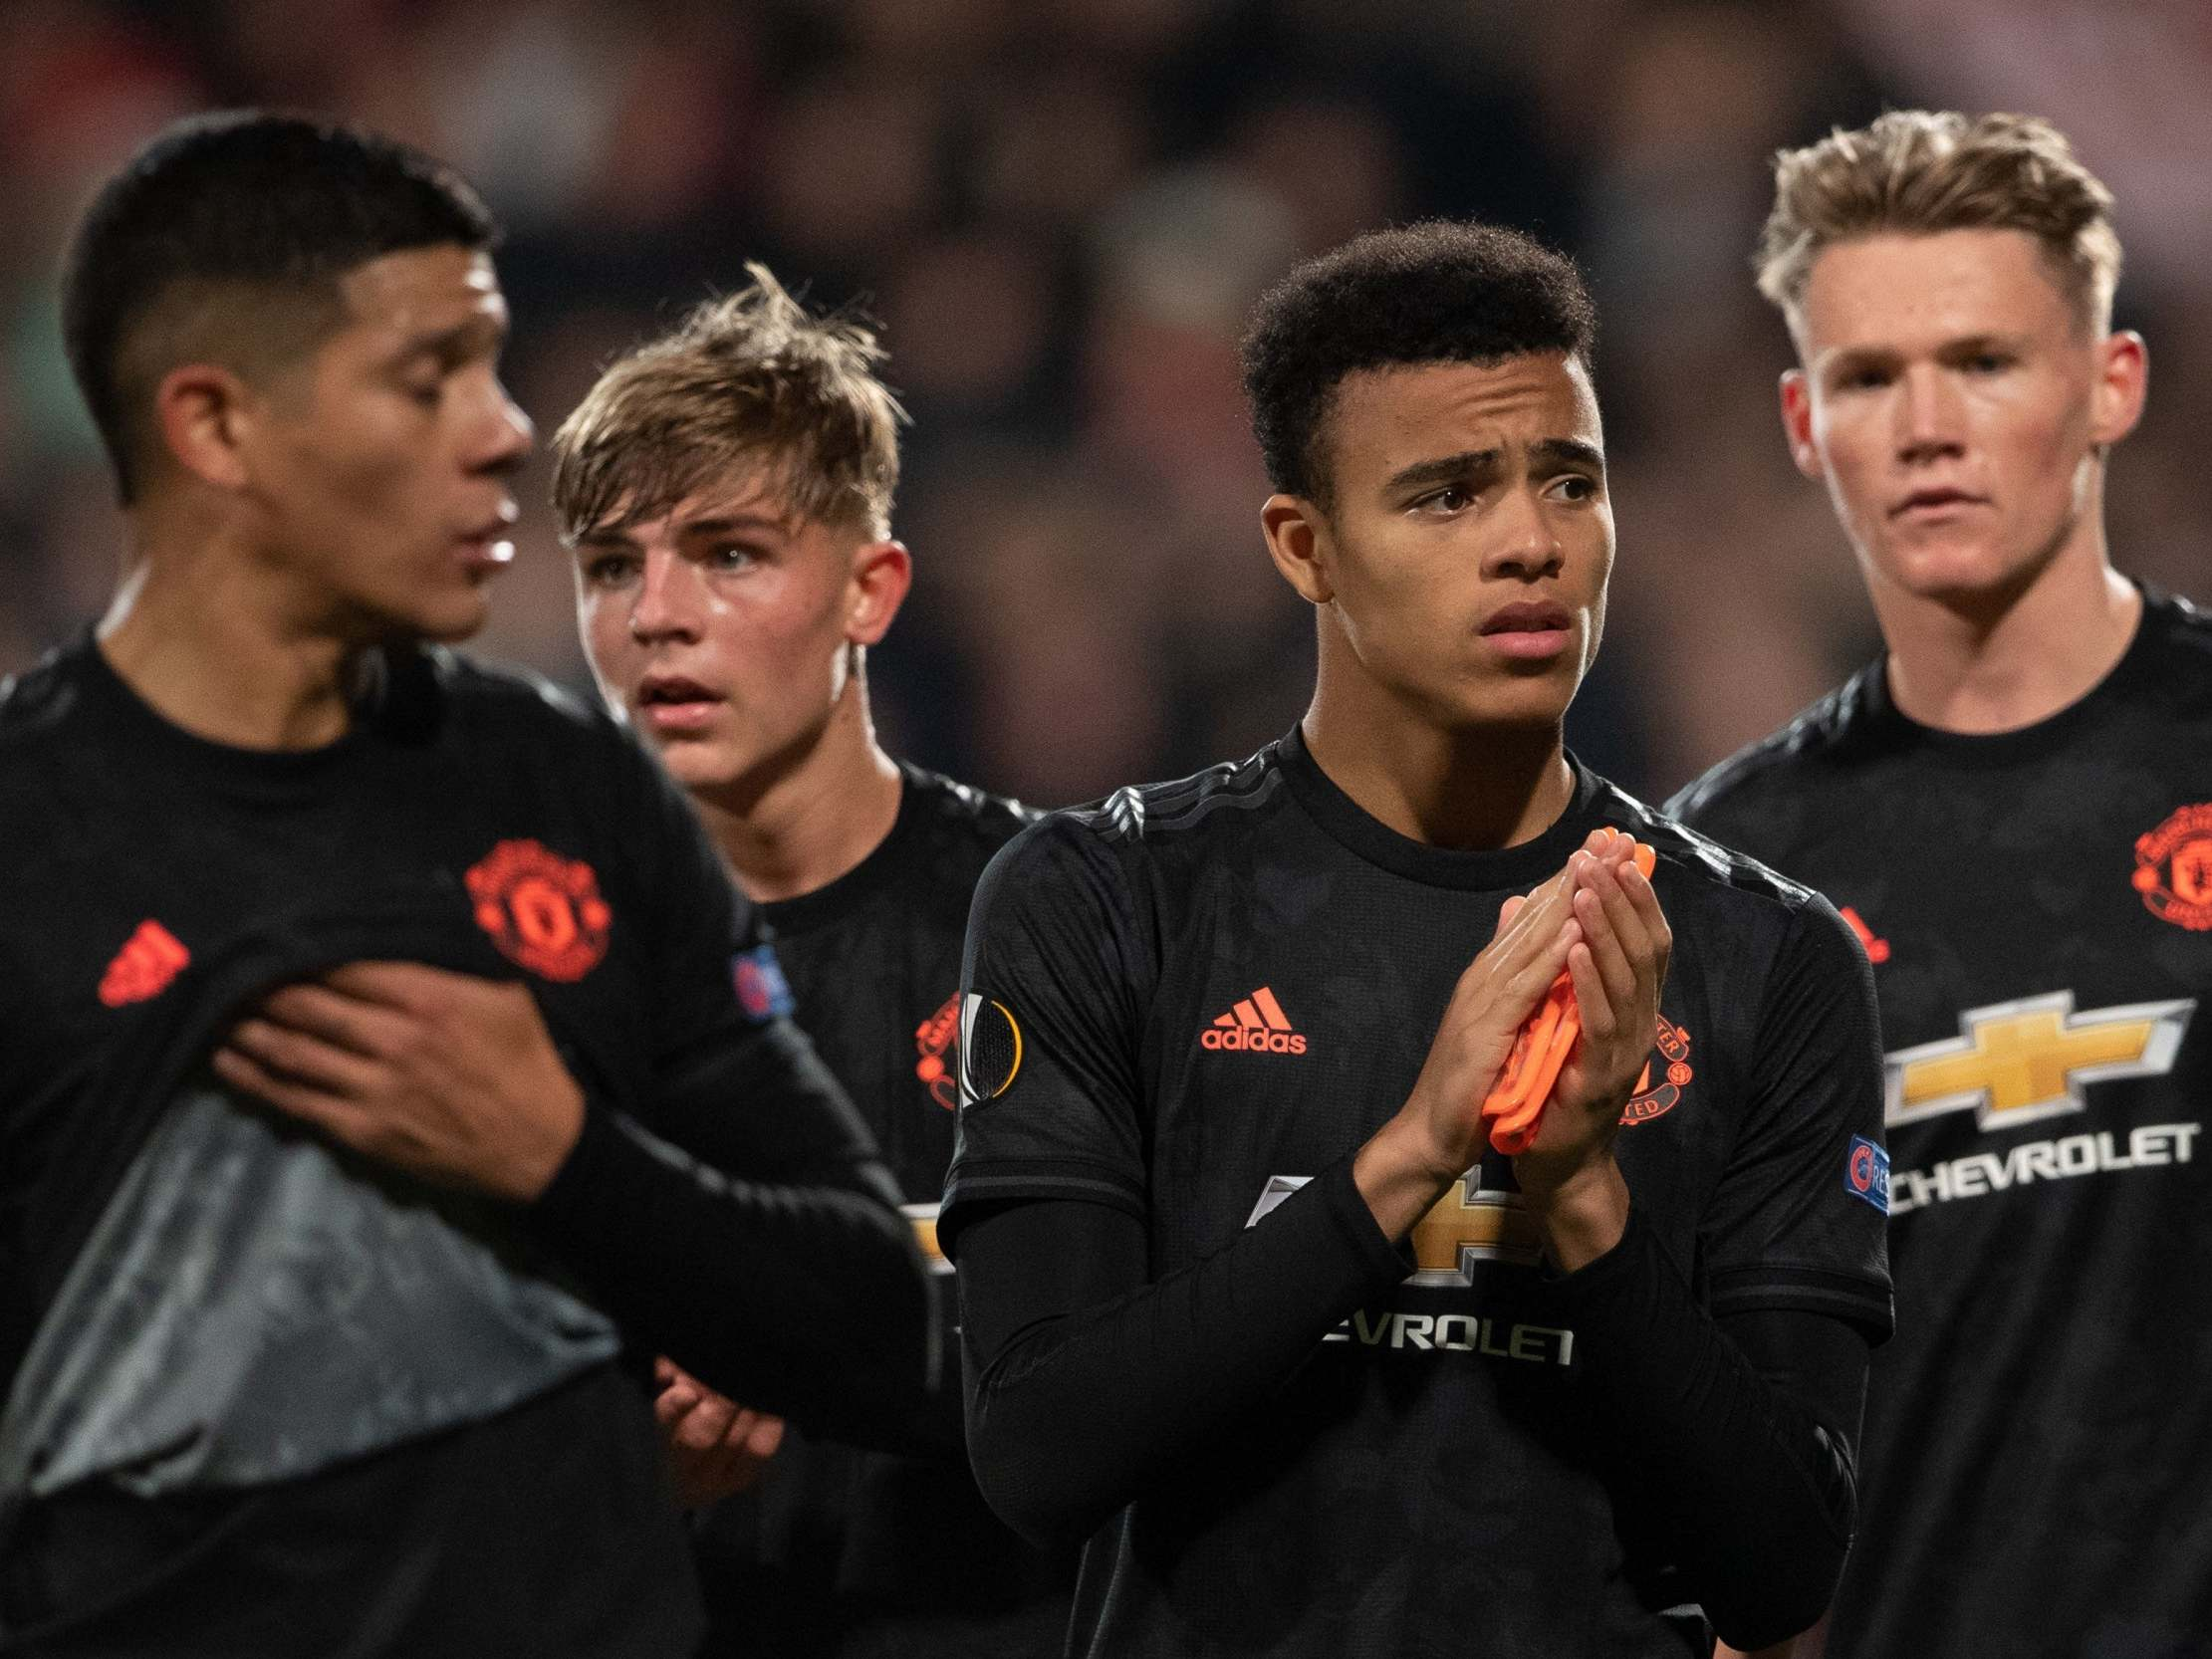 Manchester United: Ole Gunnar Solskjaer's blame of referees cannot mask club's lack of imagination